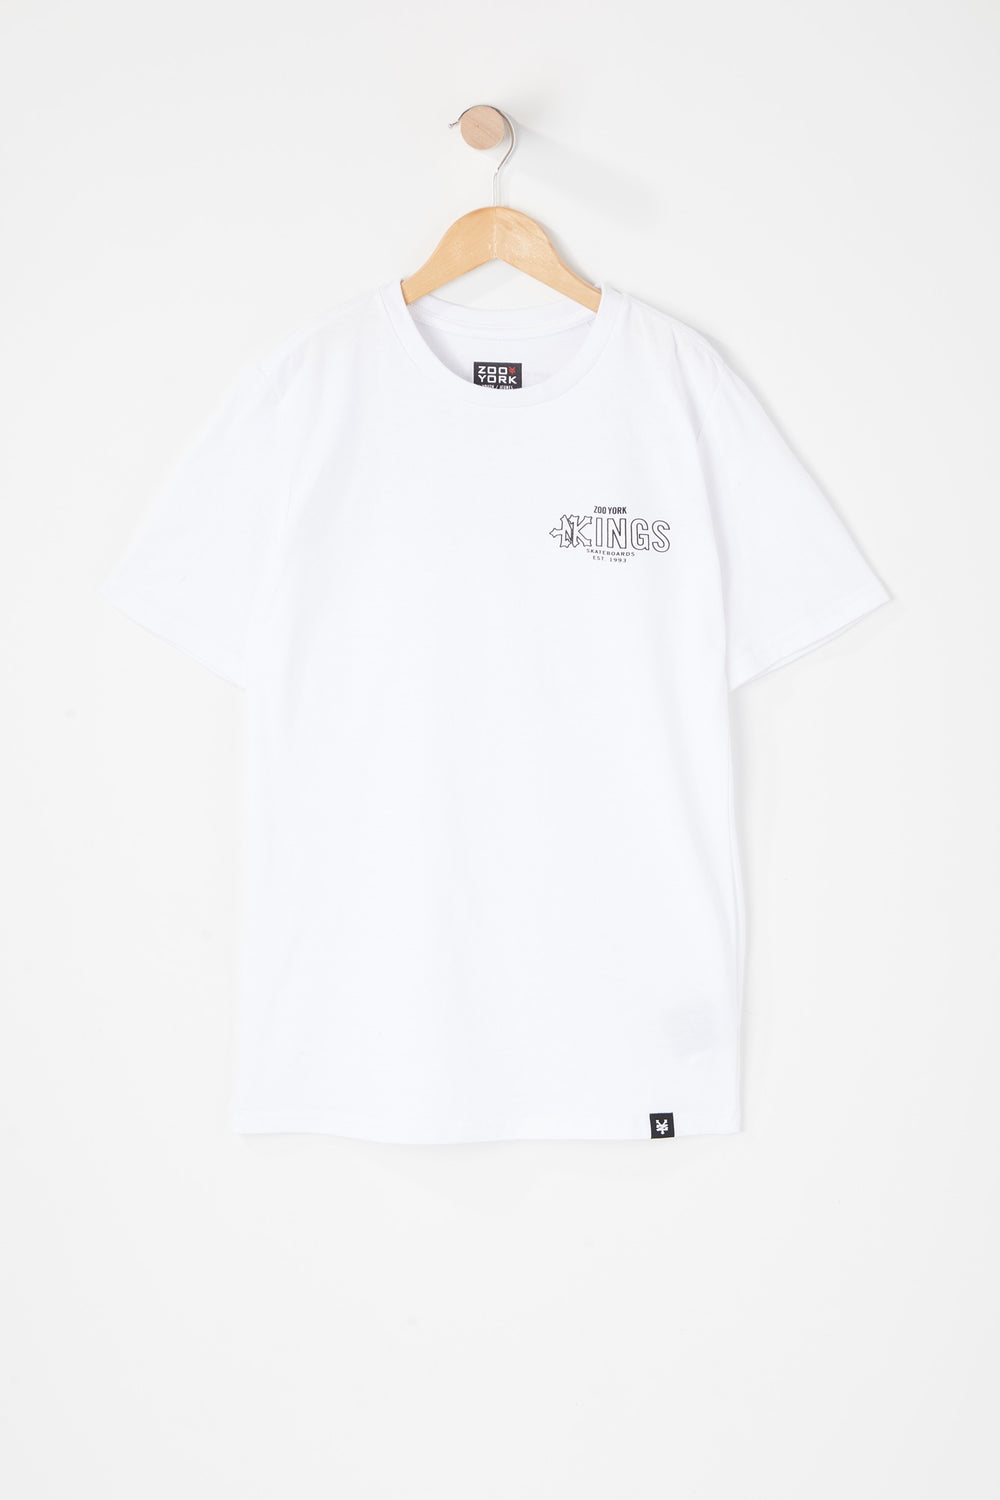 T-Shirt Kings Zoo York Junior Blanc